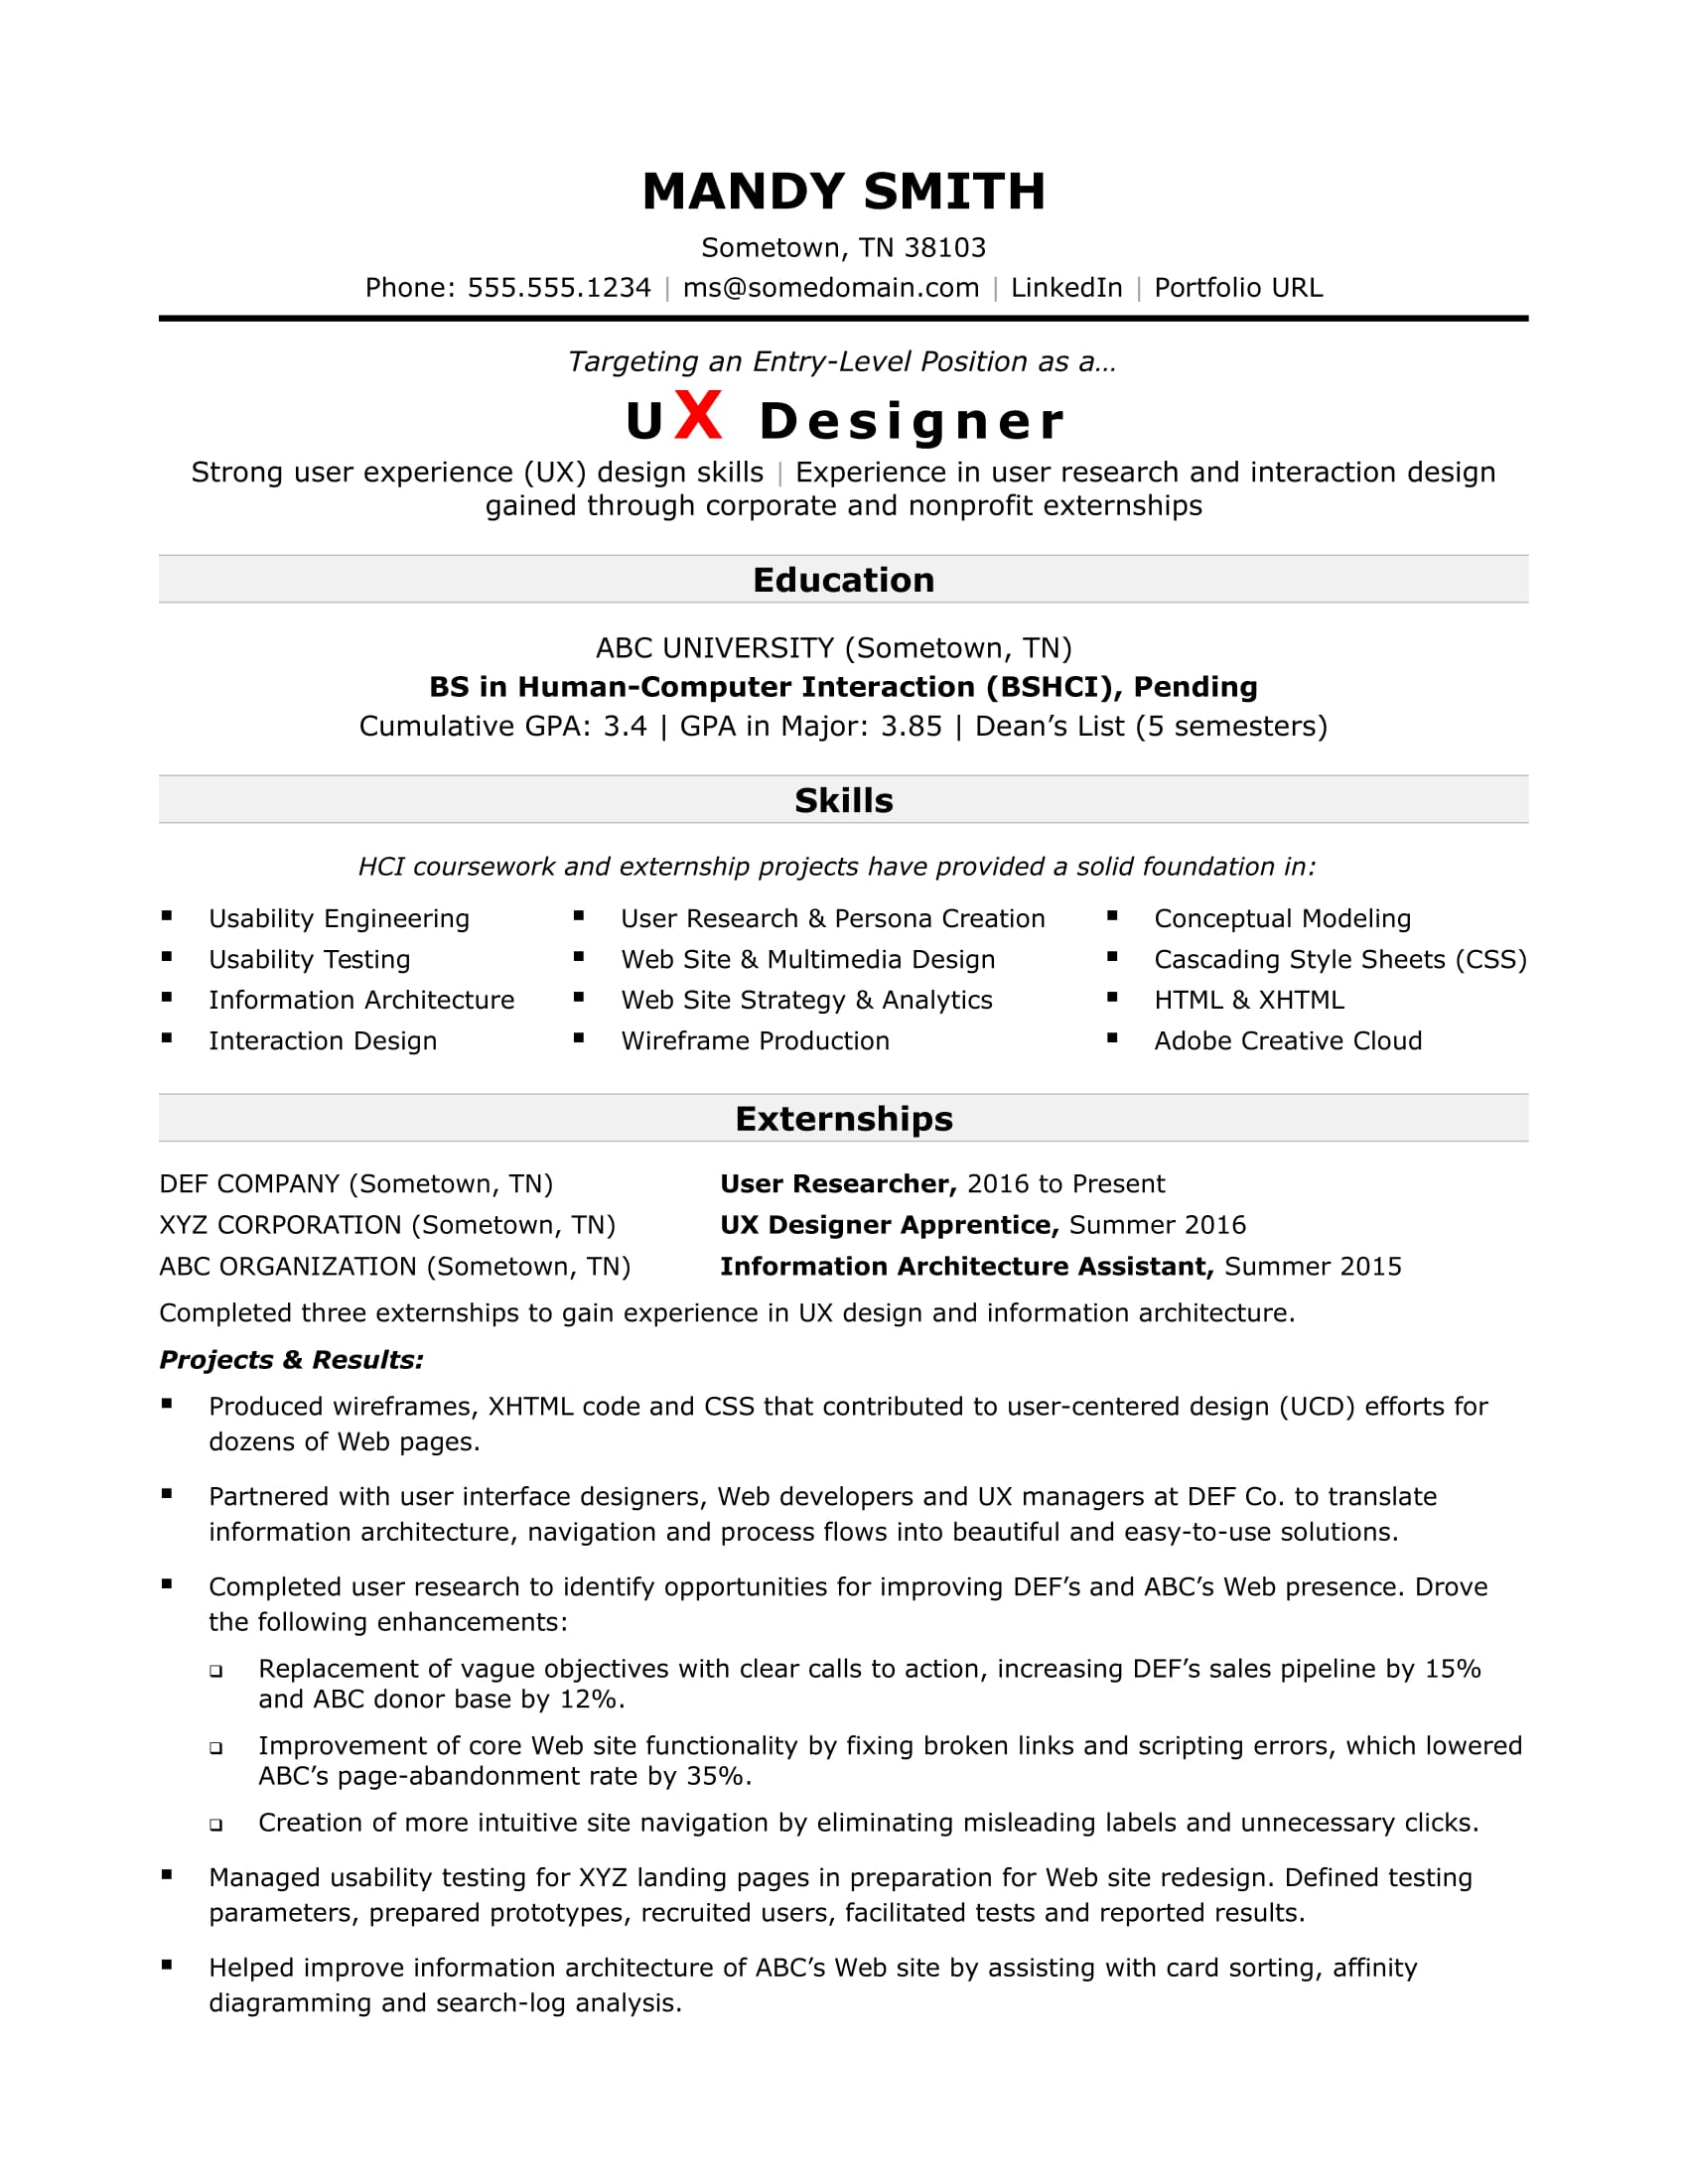 sample resume for an entry level ux designer - Sample Resume With Research Experience